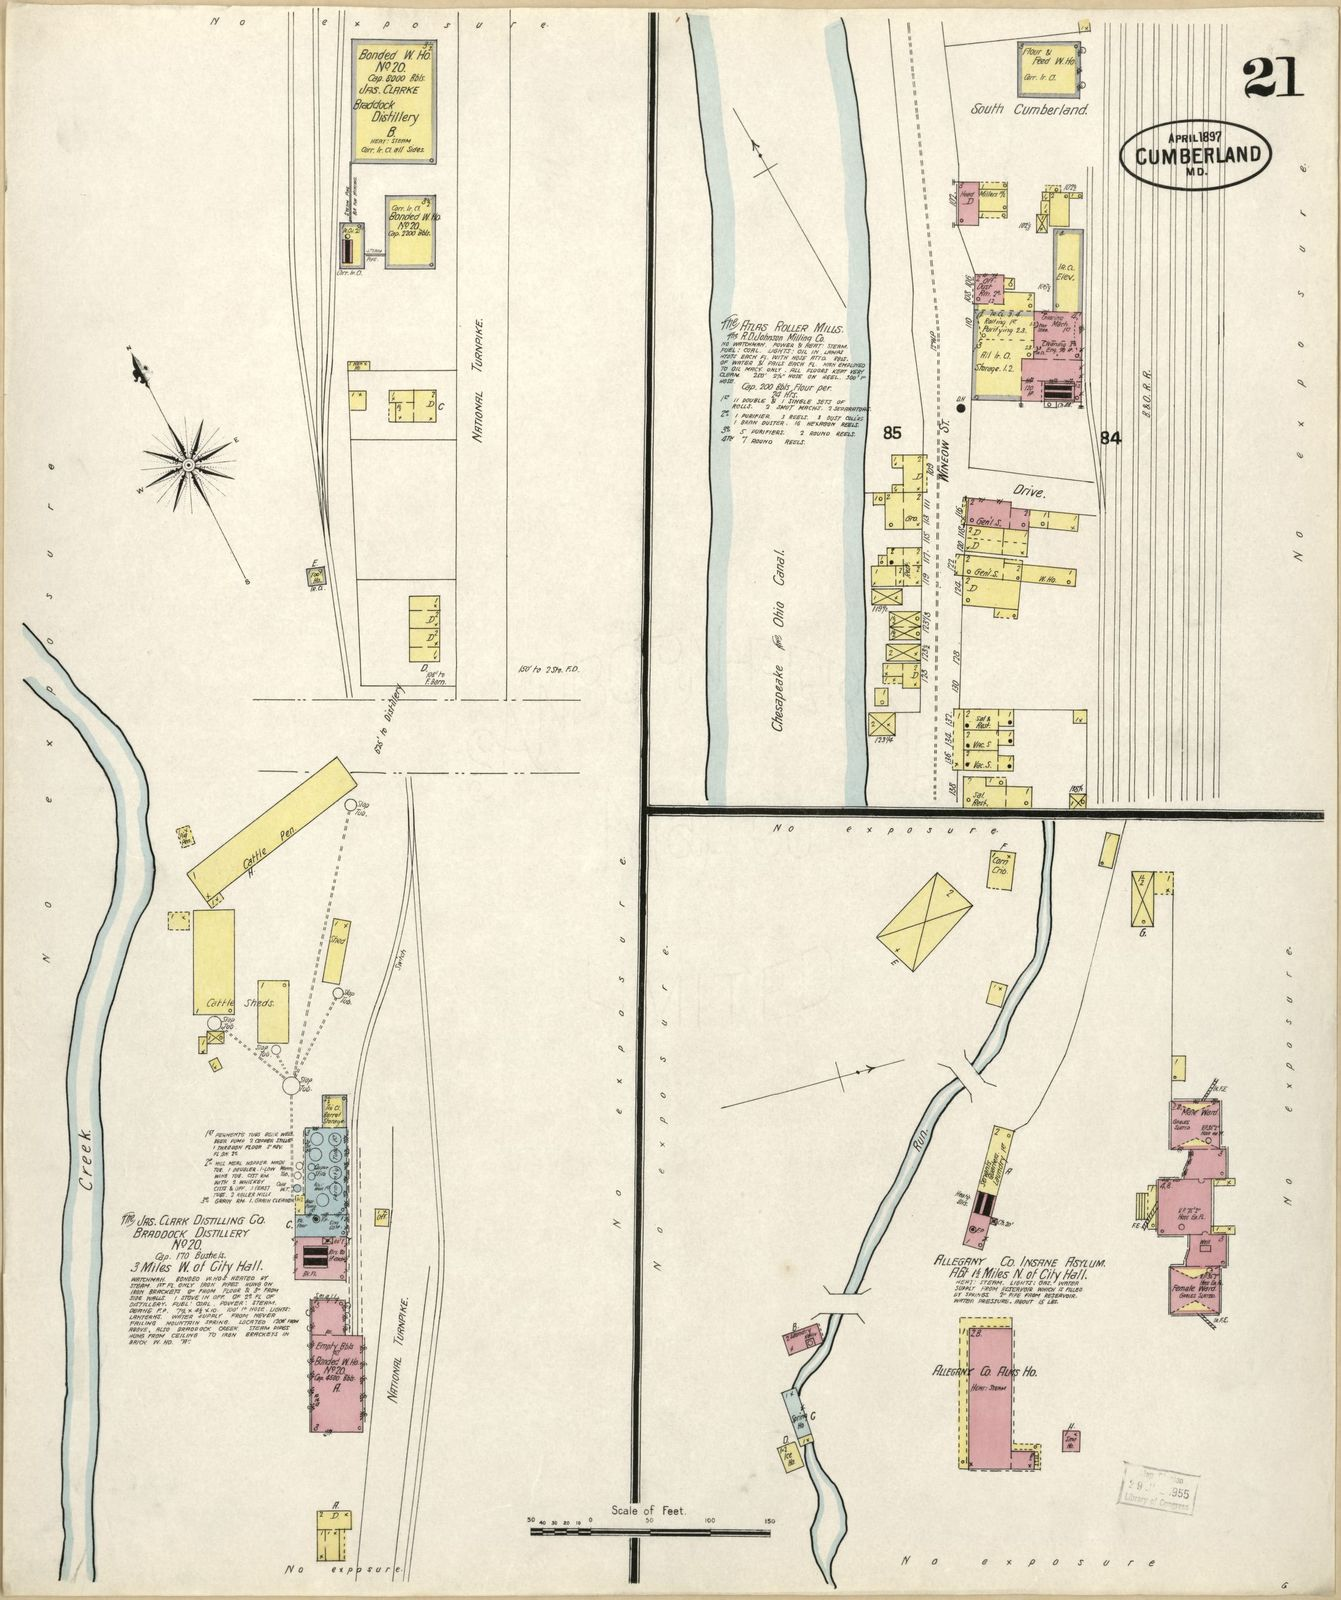 Sanborn Fire Map.Sanborn Fire Insurance Map From Cumberland Allegany County